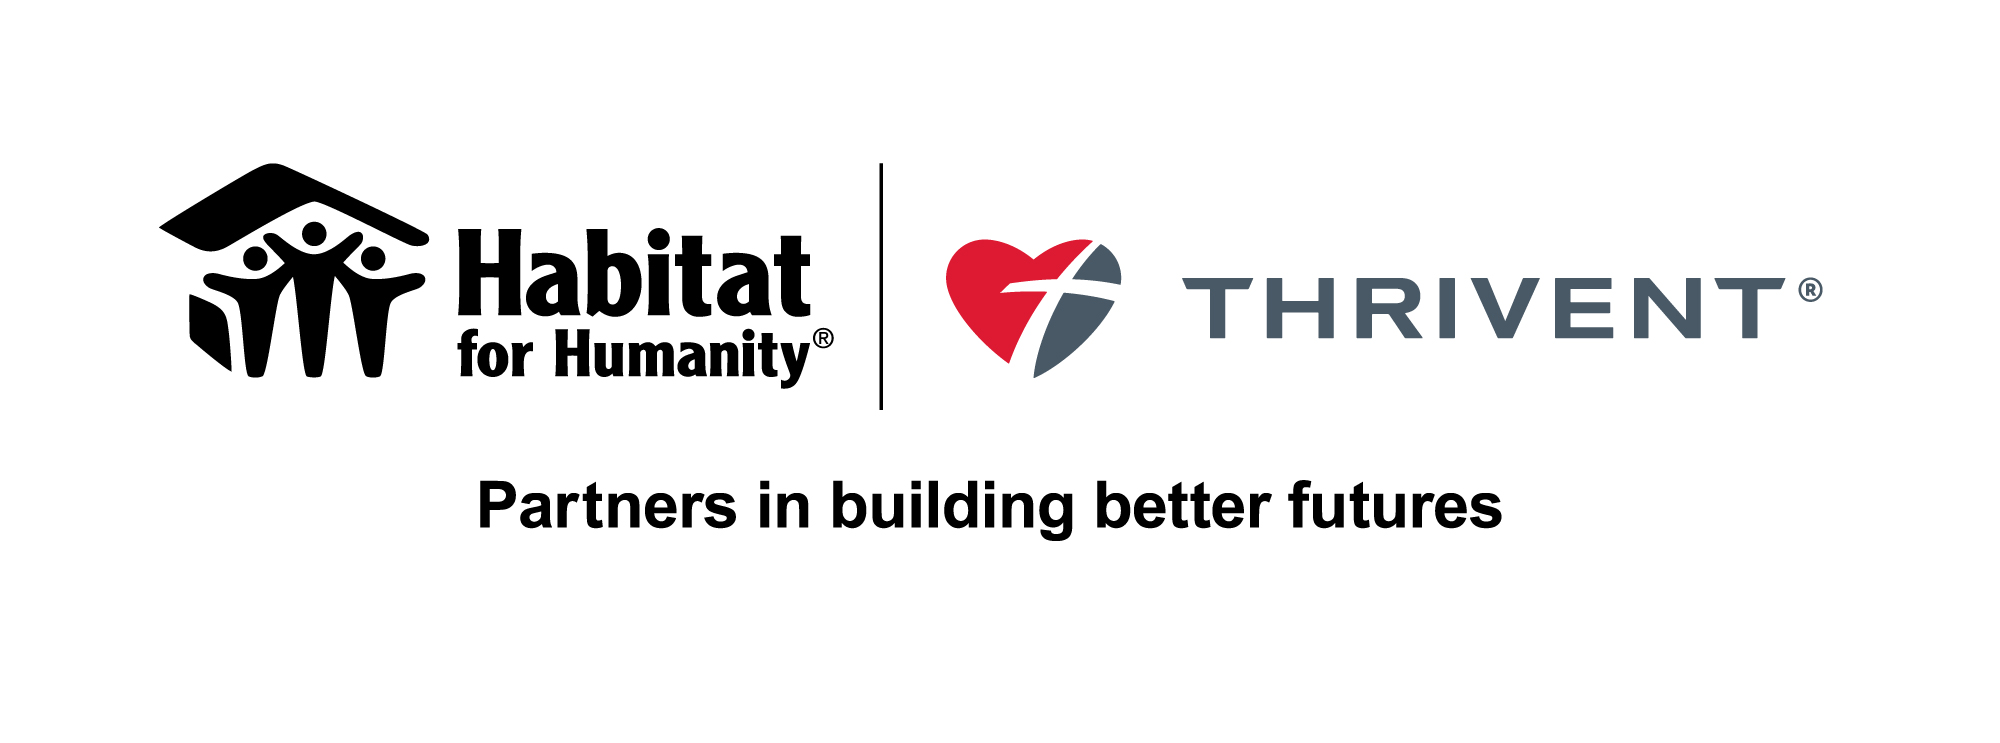 Thrivent Faith Build - PR - 1/22/19